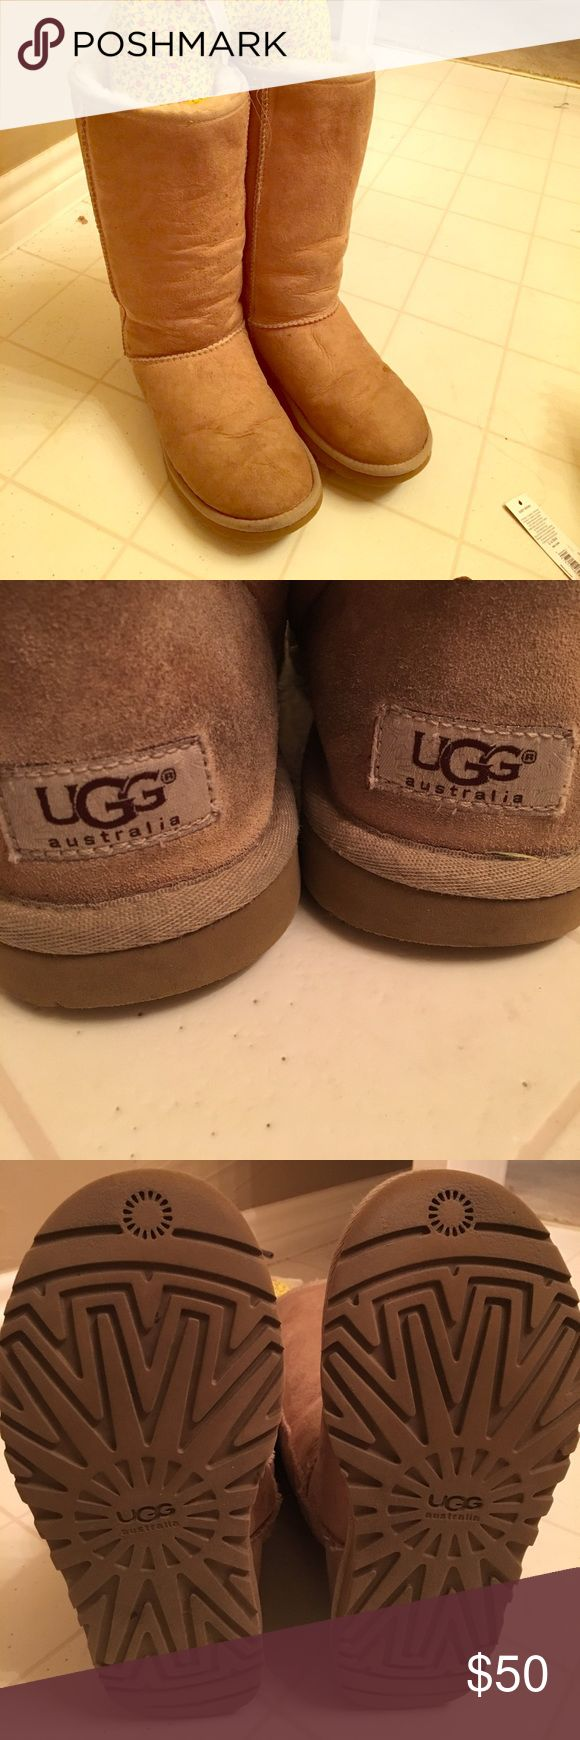 Classic Tall UGG boots - Used - Has a couple of tiny dark spots but nothing noticeable  - Treated with UGG care kit UGG Shoes Winter & Rain Boots